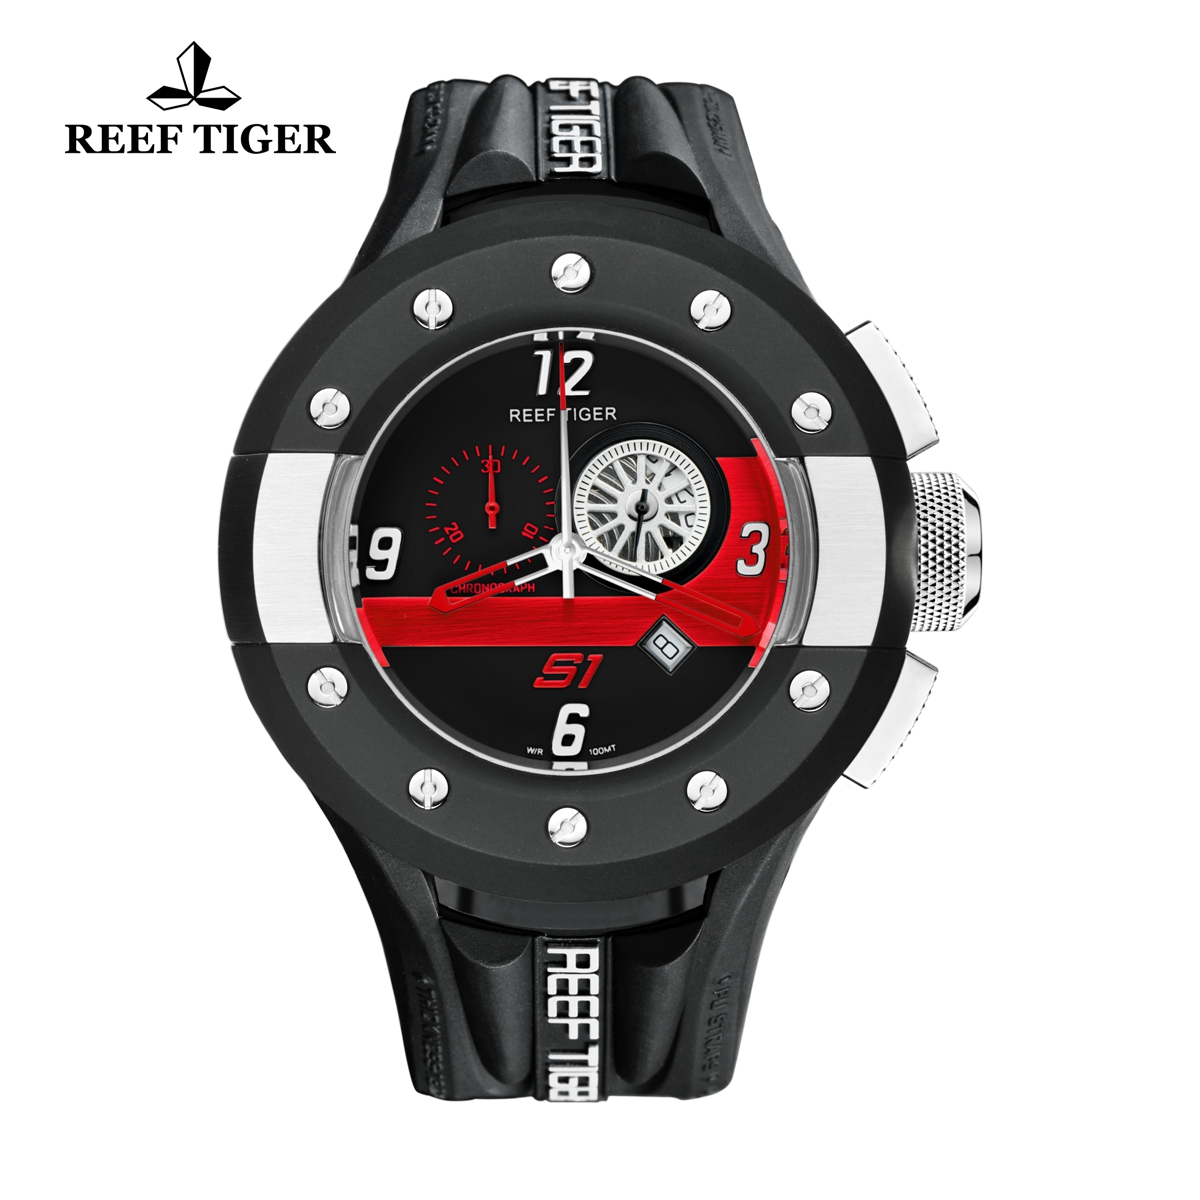 Reef Tiger Rally S1 Casual Watch Stainless Steel Dashboard Dial Rubber Strap Quartz Watch RGA3027-BBBR